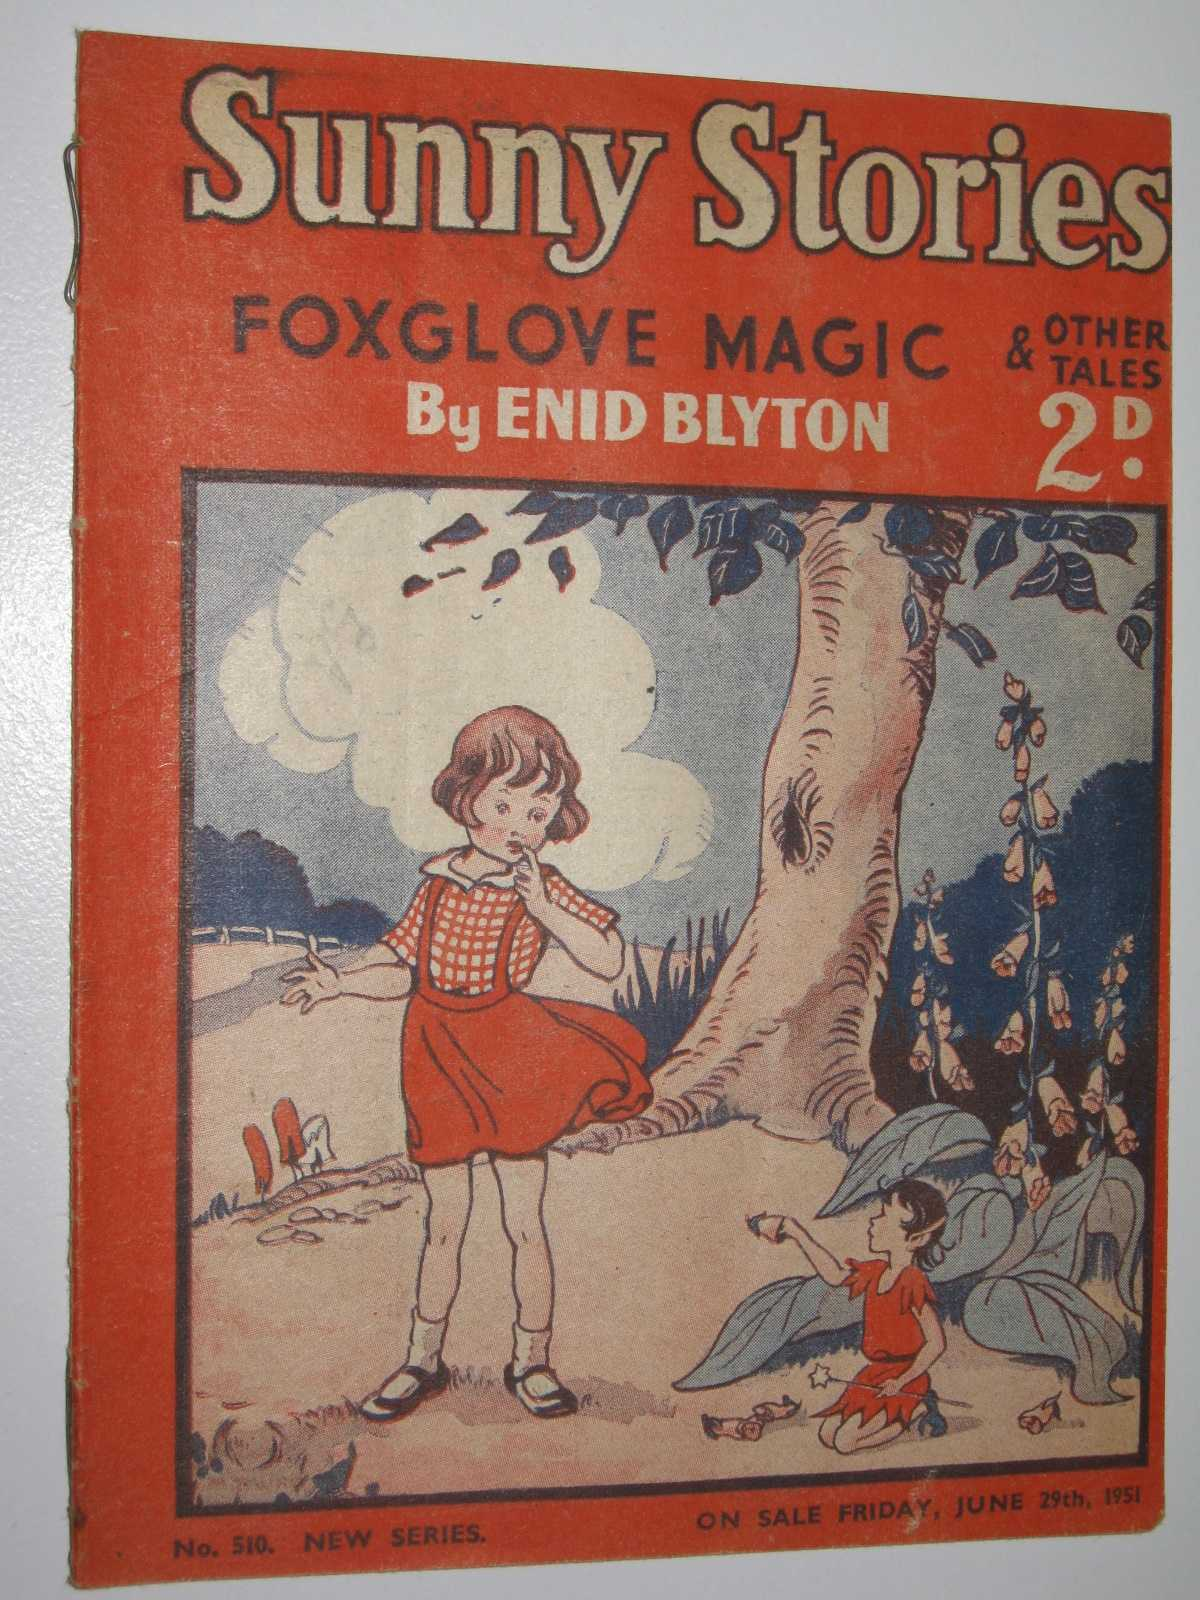 Image for Sunny Stories No. 510 New Series : Foxglove Magic & Other Tales